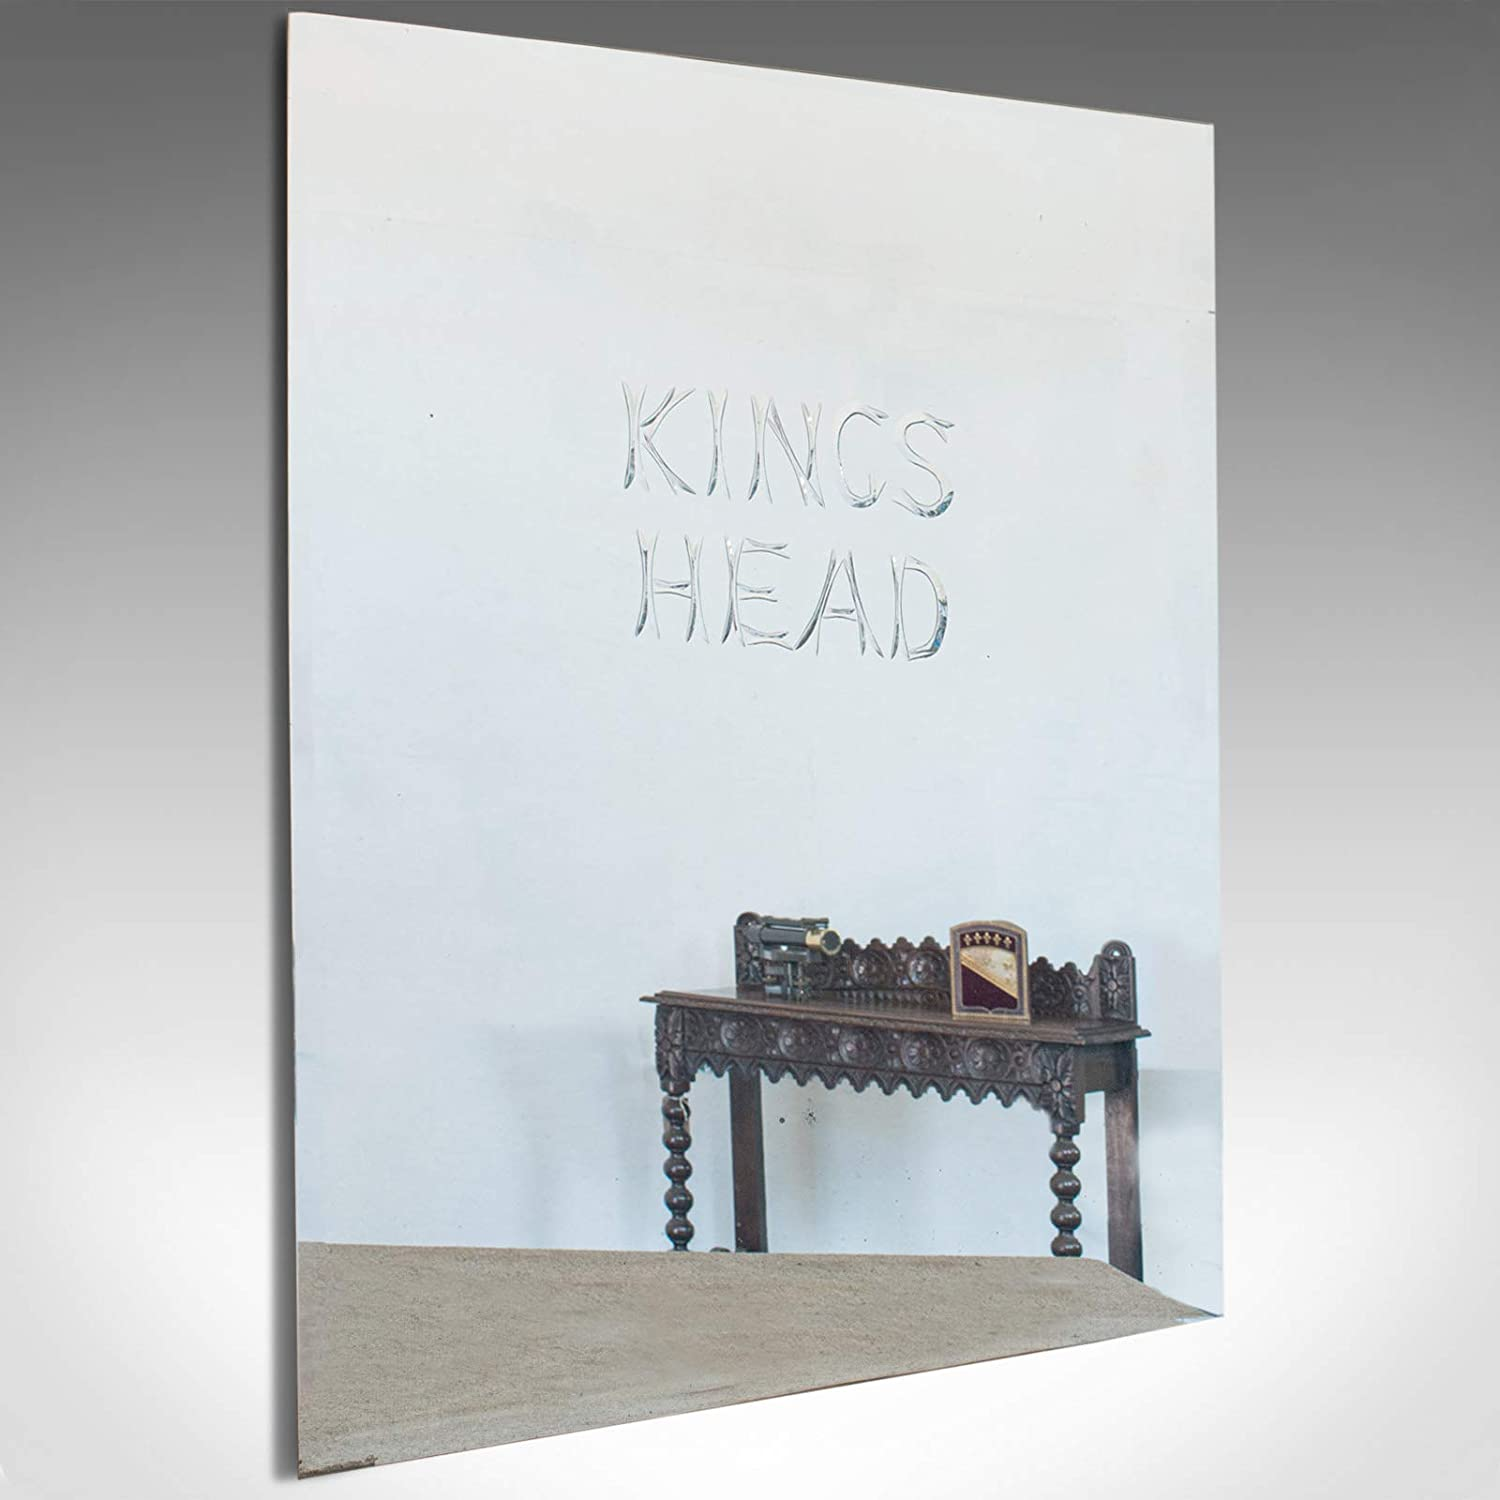 Large Vintage Etched Mirror English Glass Kings Head Public House 1970 Amazon Co Uk Kitchen Home